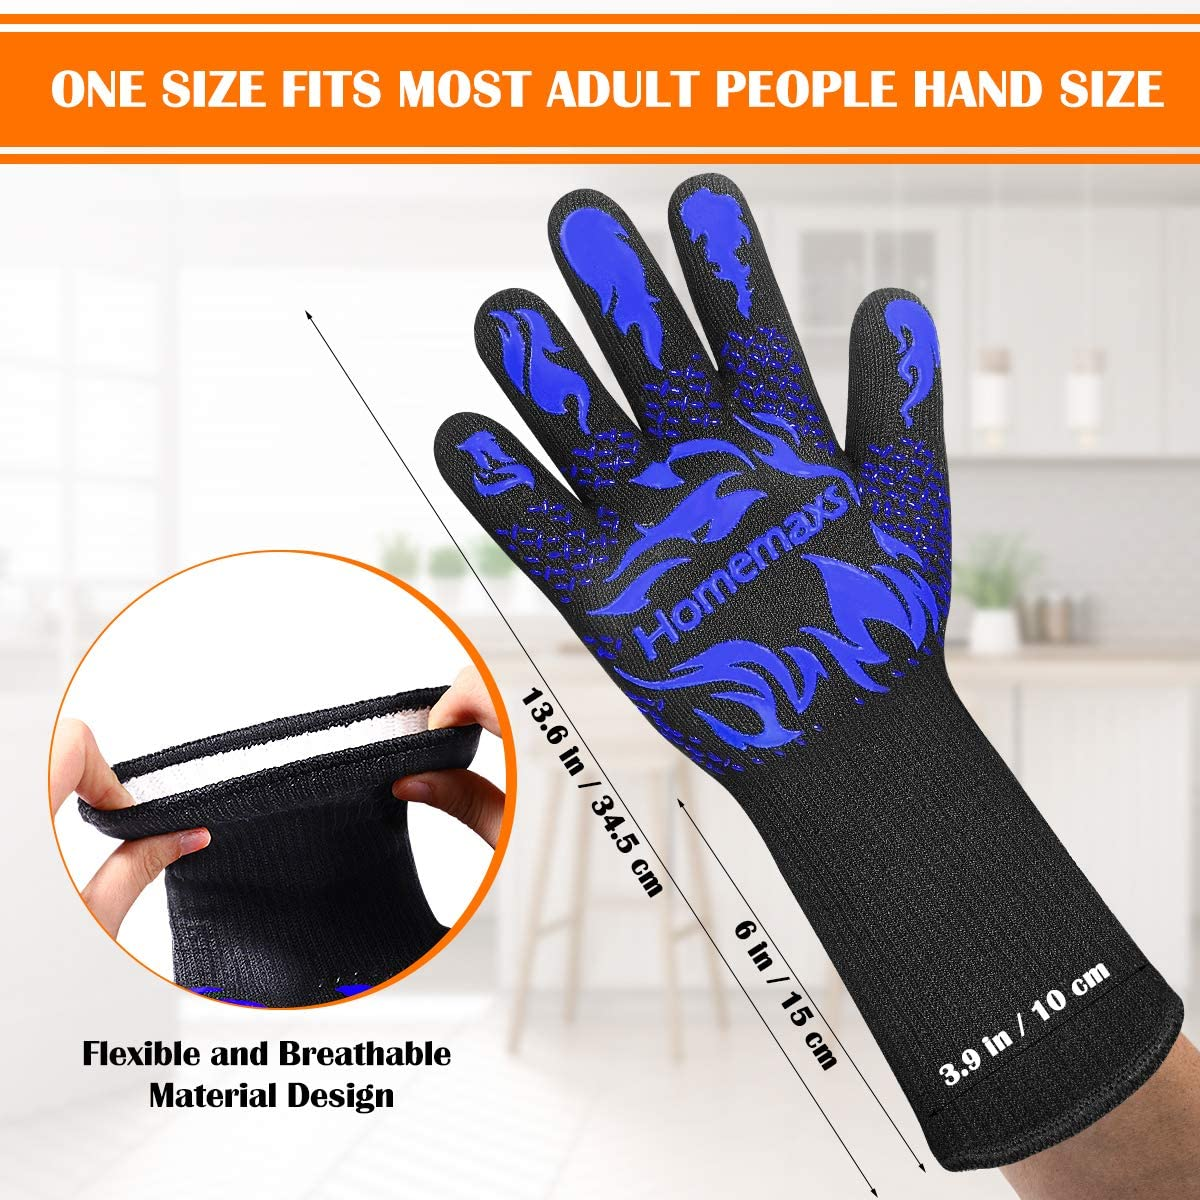 BBQ Gloves, Extreme Heat Resistant Grill Gloves, Ultra-Long Wrist Grill Gloves Food Grade Oven Gloves for Barbecue, Cooking (Blue)